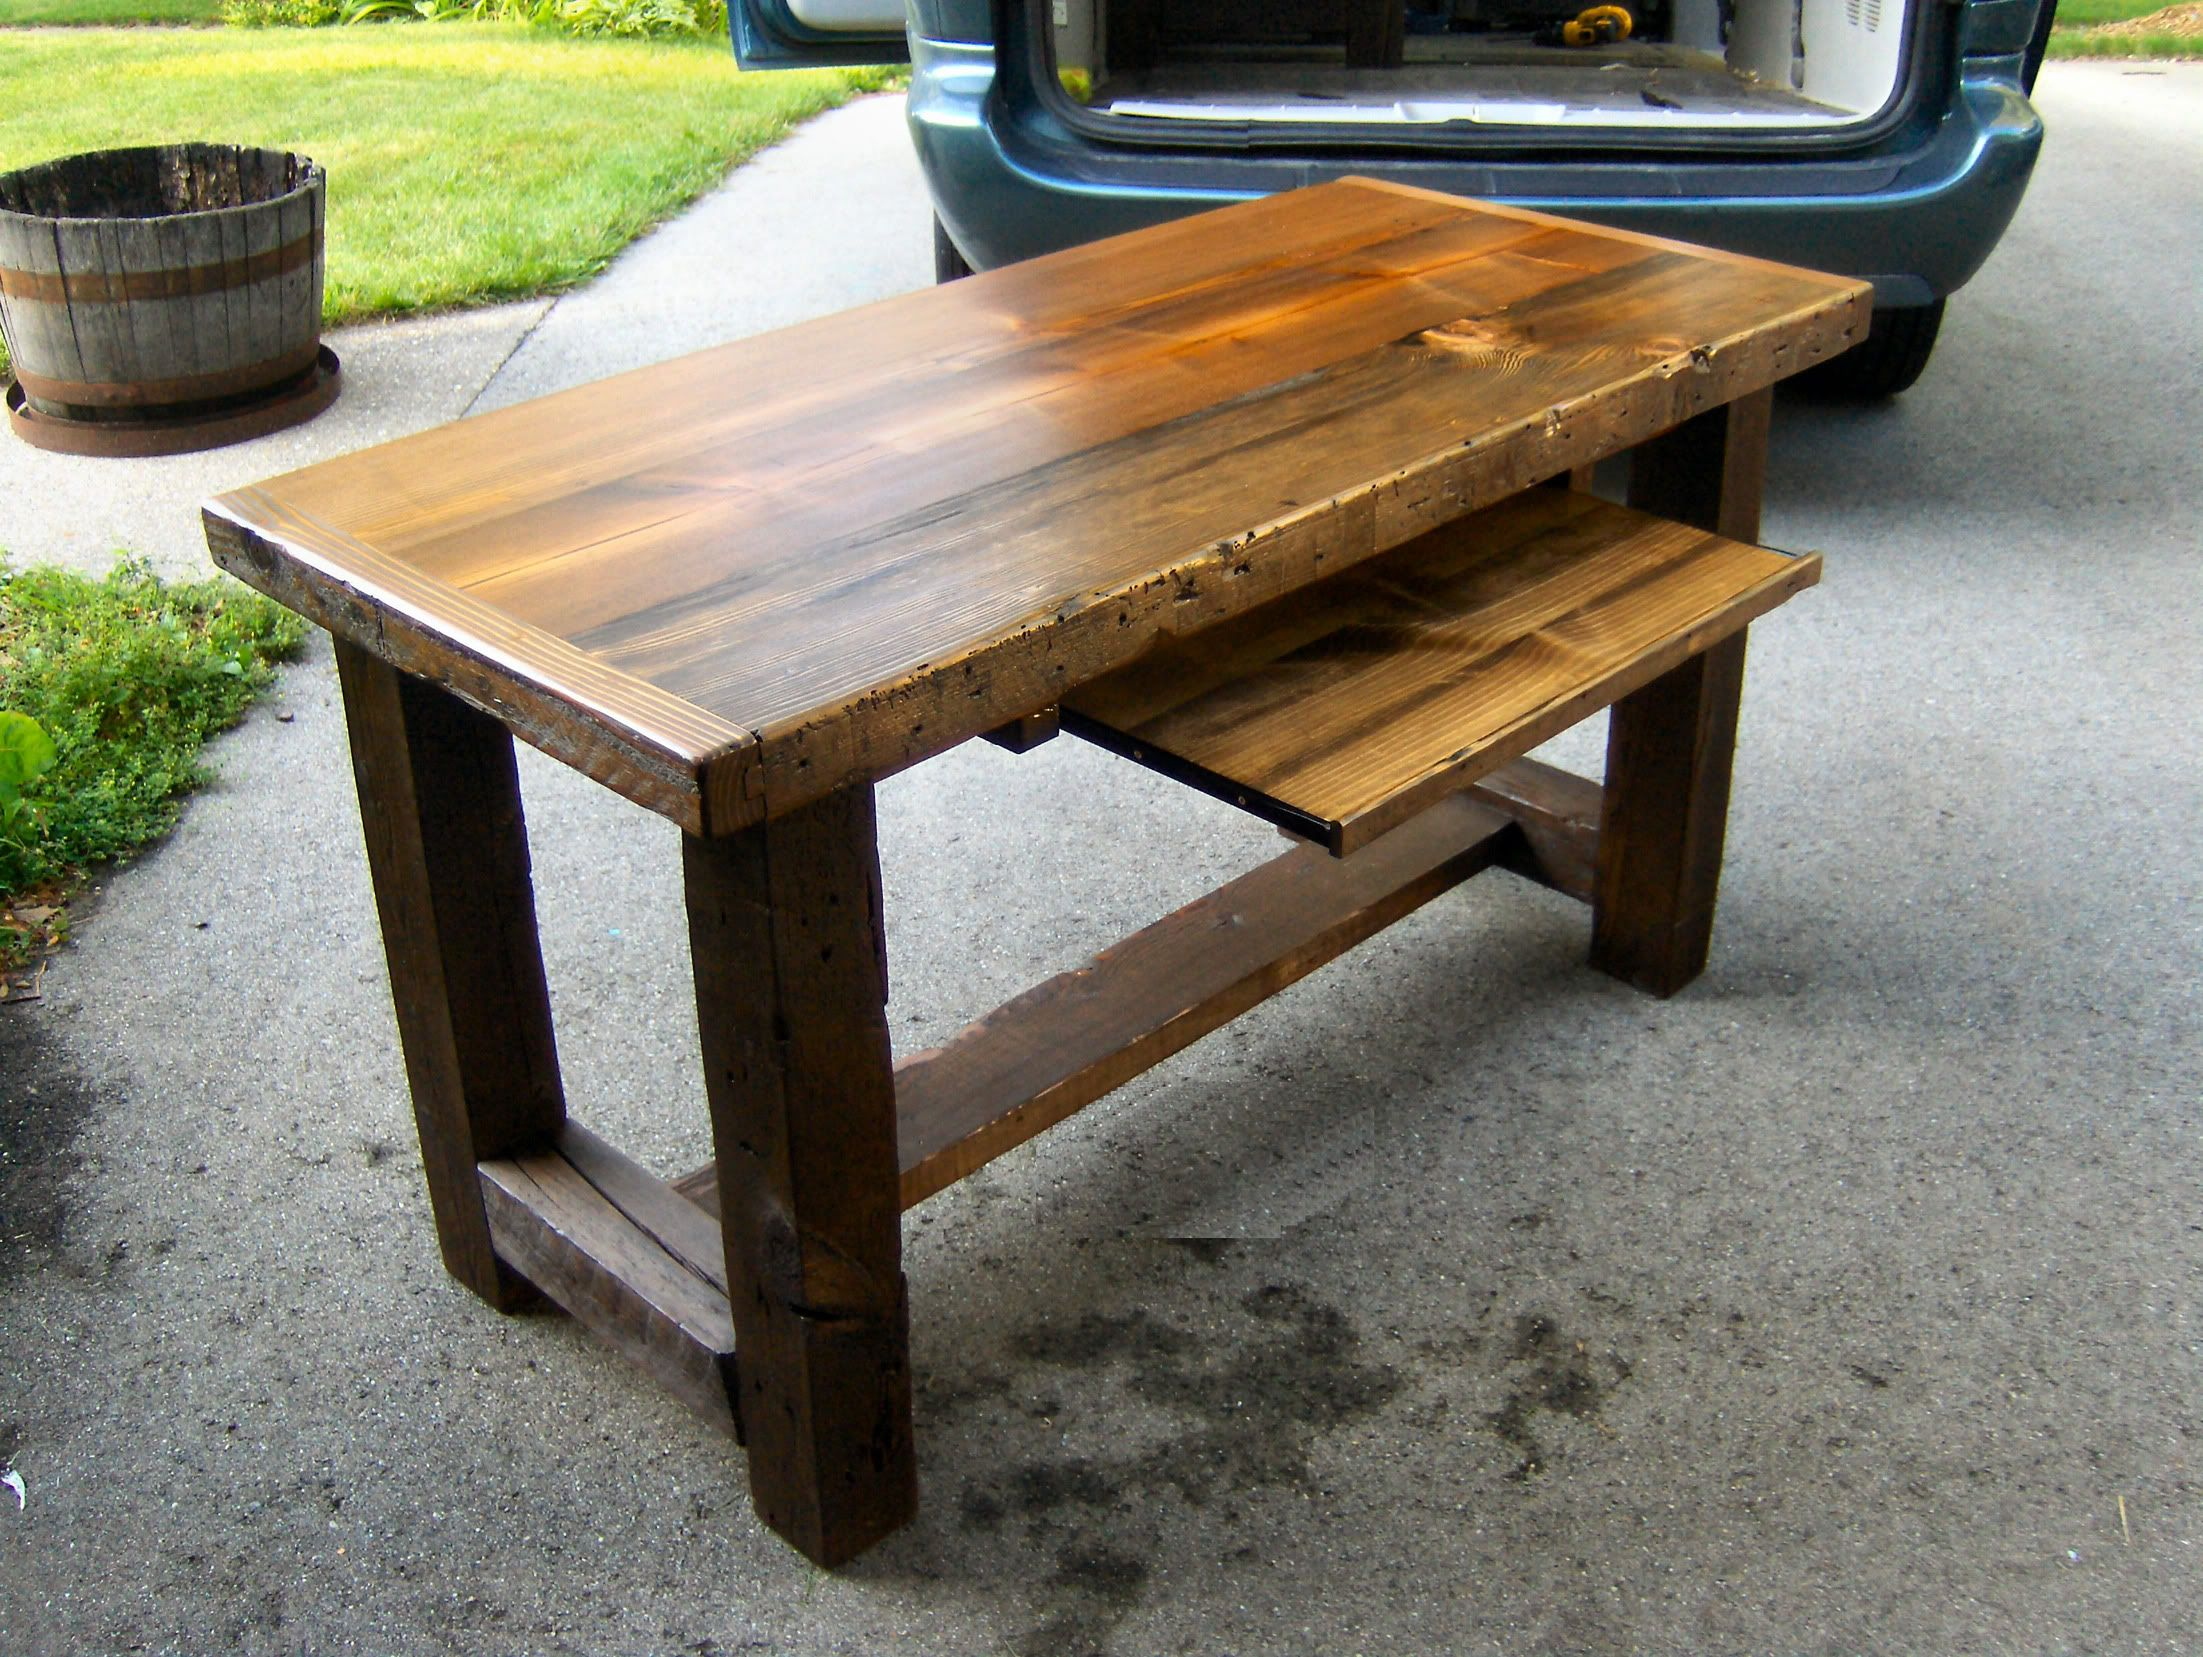 barn board furniture ideas. Old Barn Wood Desk Not Sure If I Like The Different Materials Wrapping Top Board Furniture Ideas